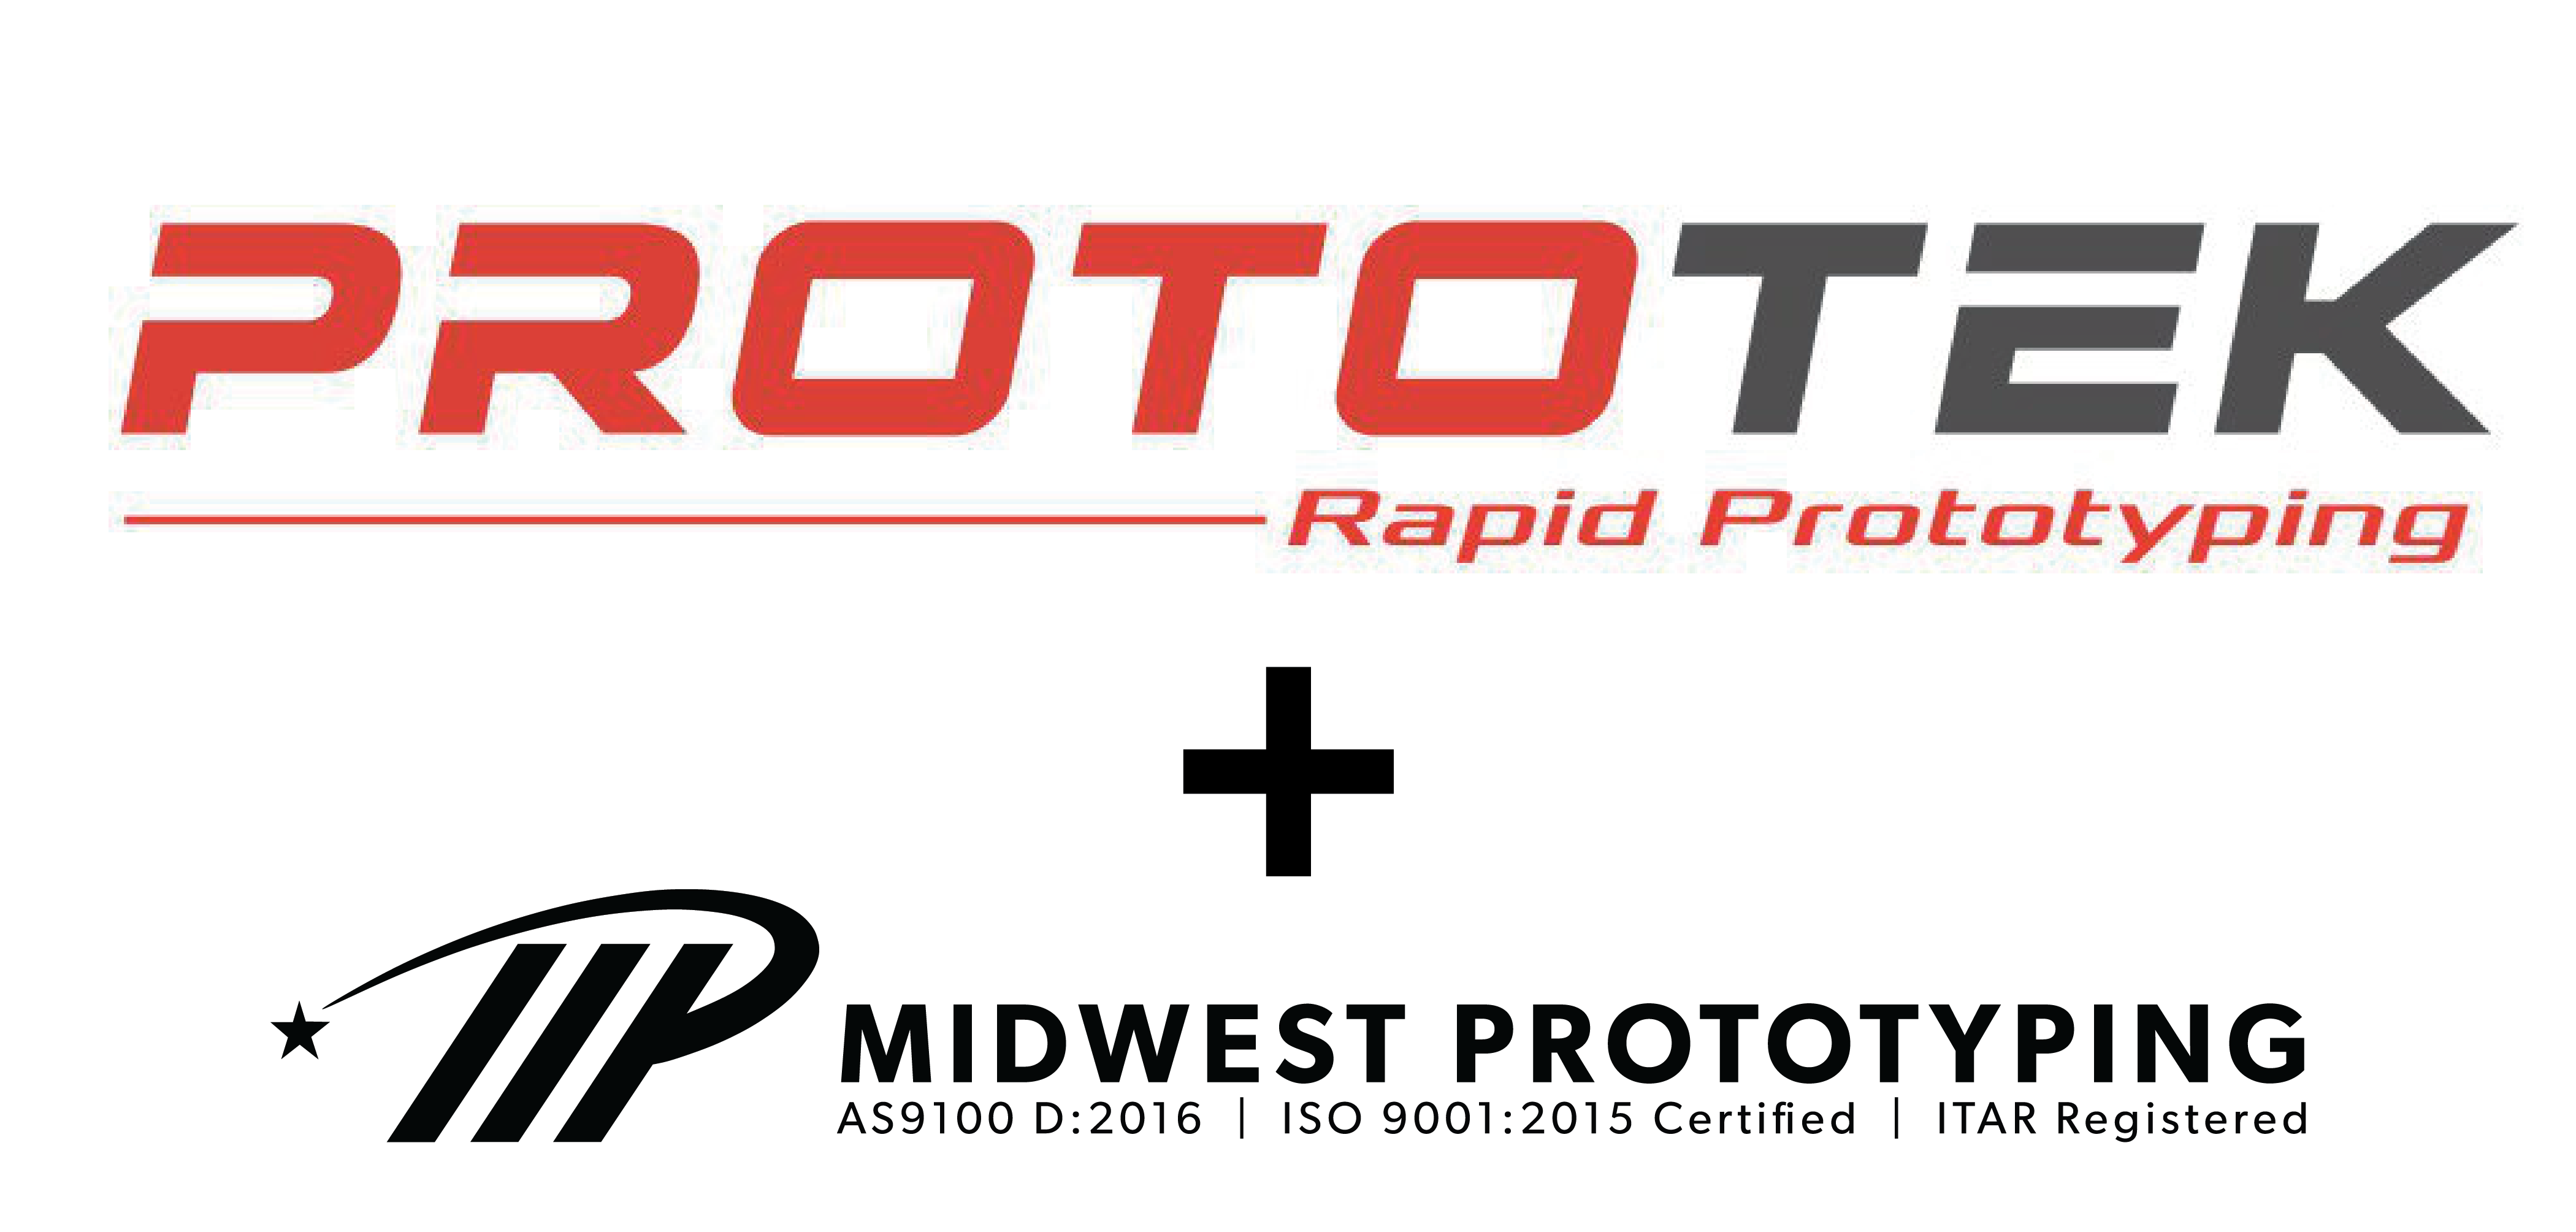 midwest prototyping and prototek